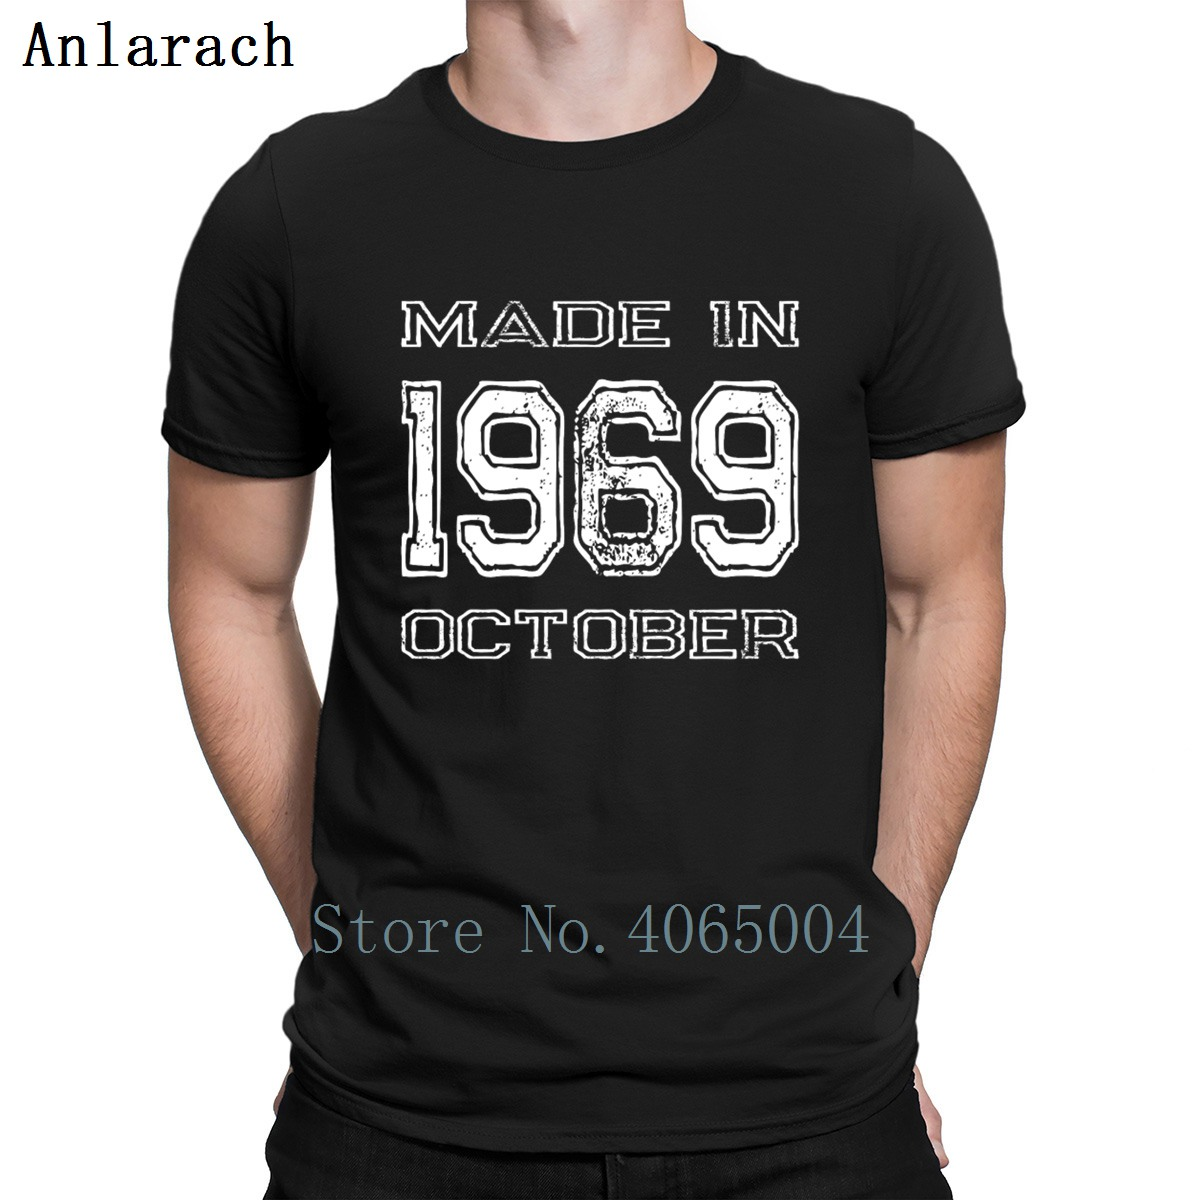 Birthday Made In 1969 October T Shirt Sunlight Fashion Cotton Summer Style Unique Trend Printed O Neck Shirt